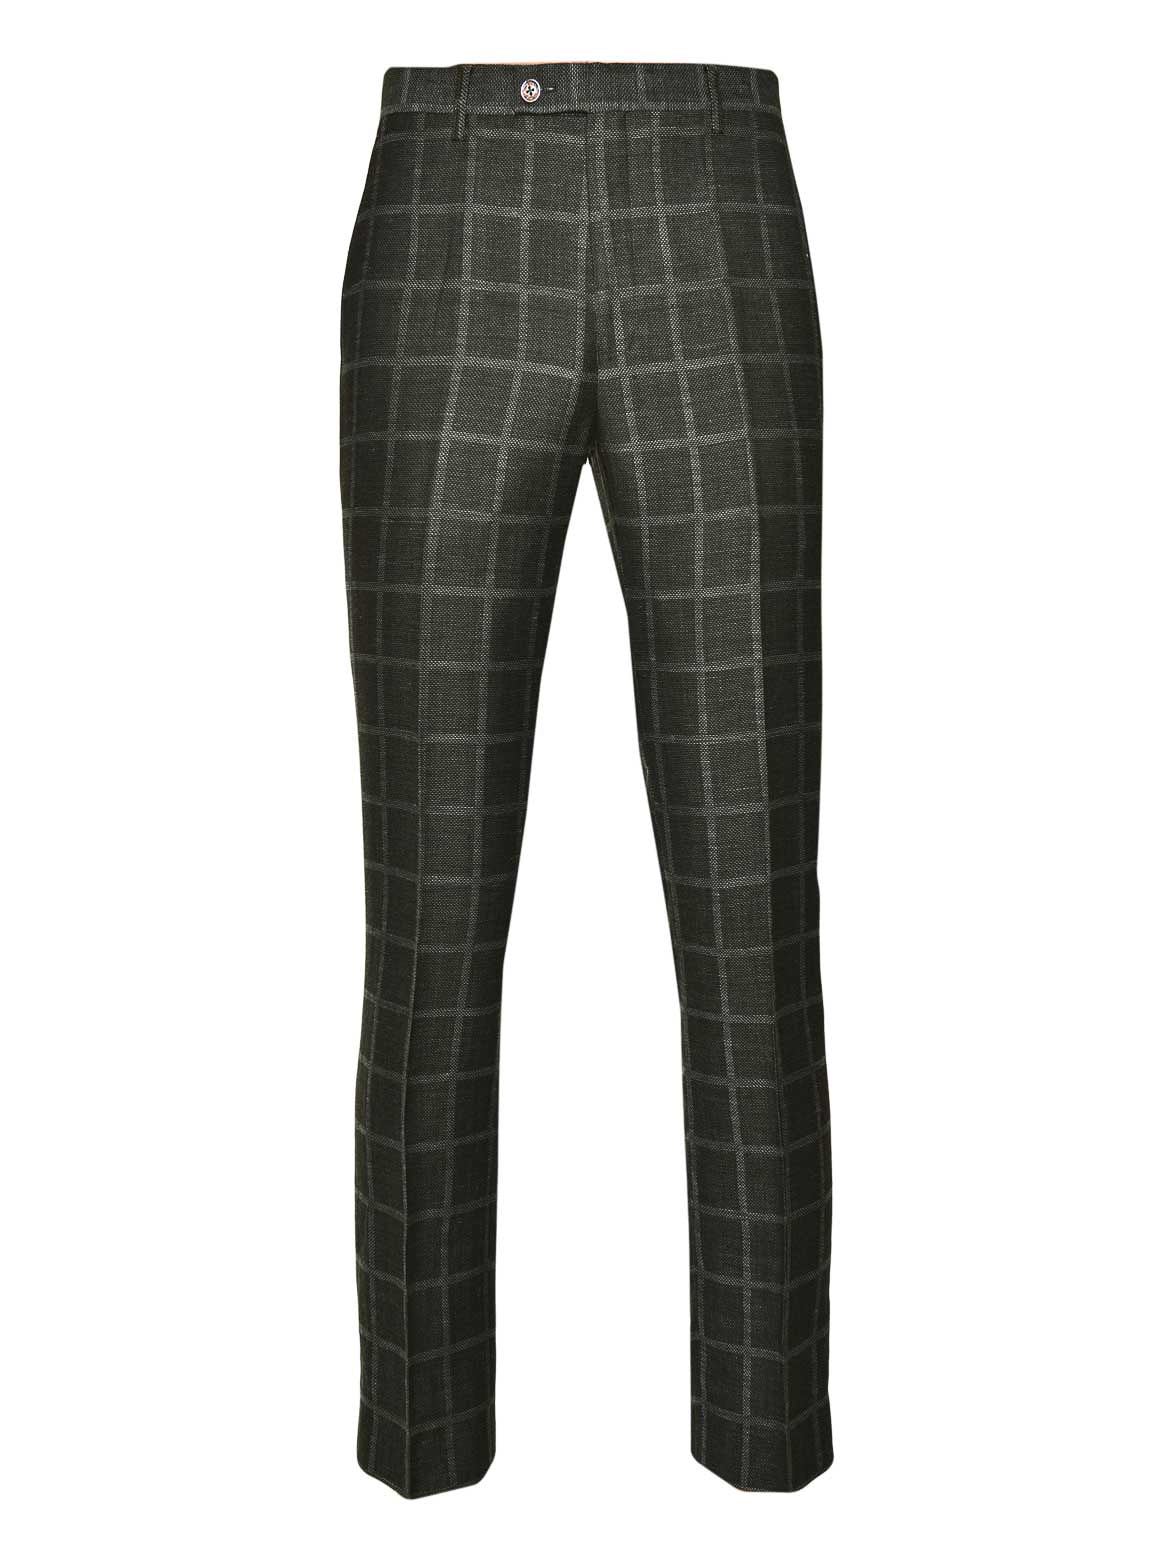 Ltd Edition Downing Pants - Slim - Green Windowpane